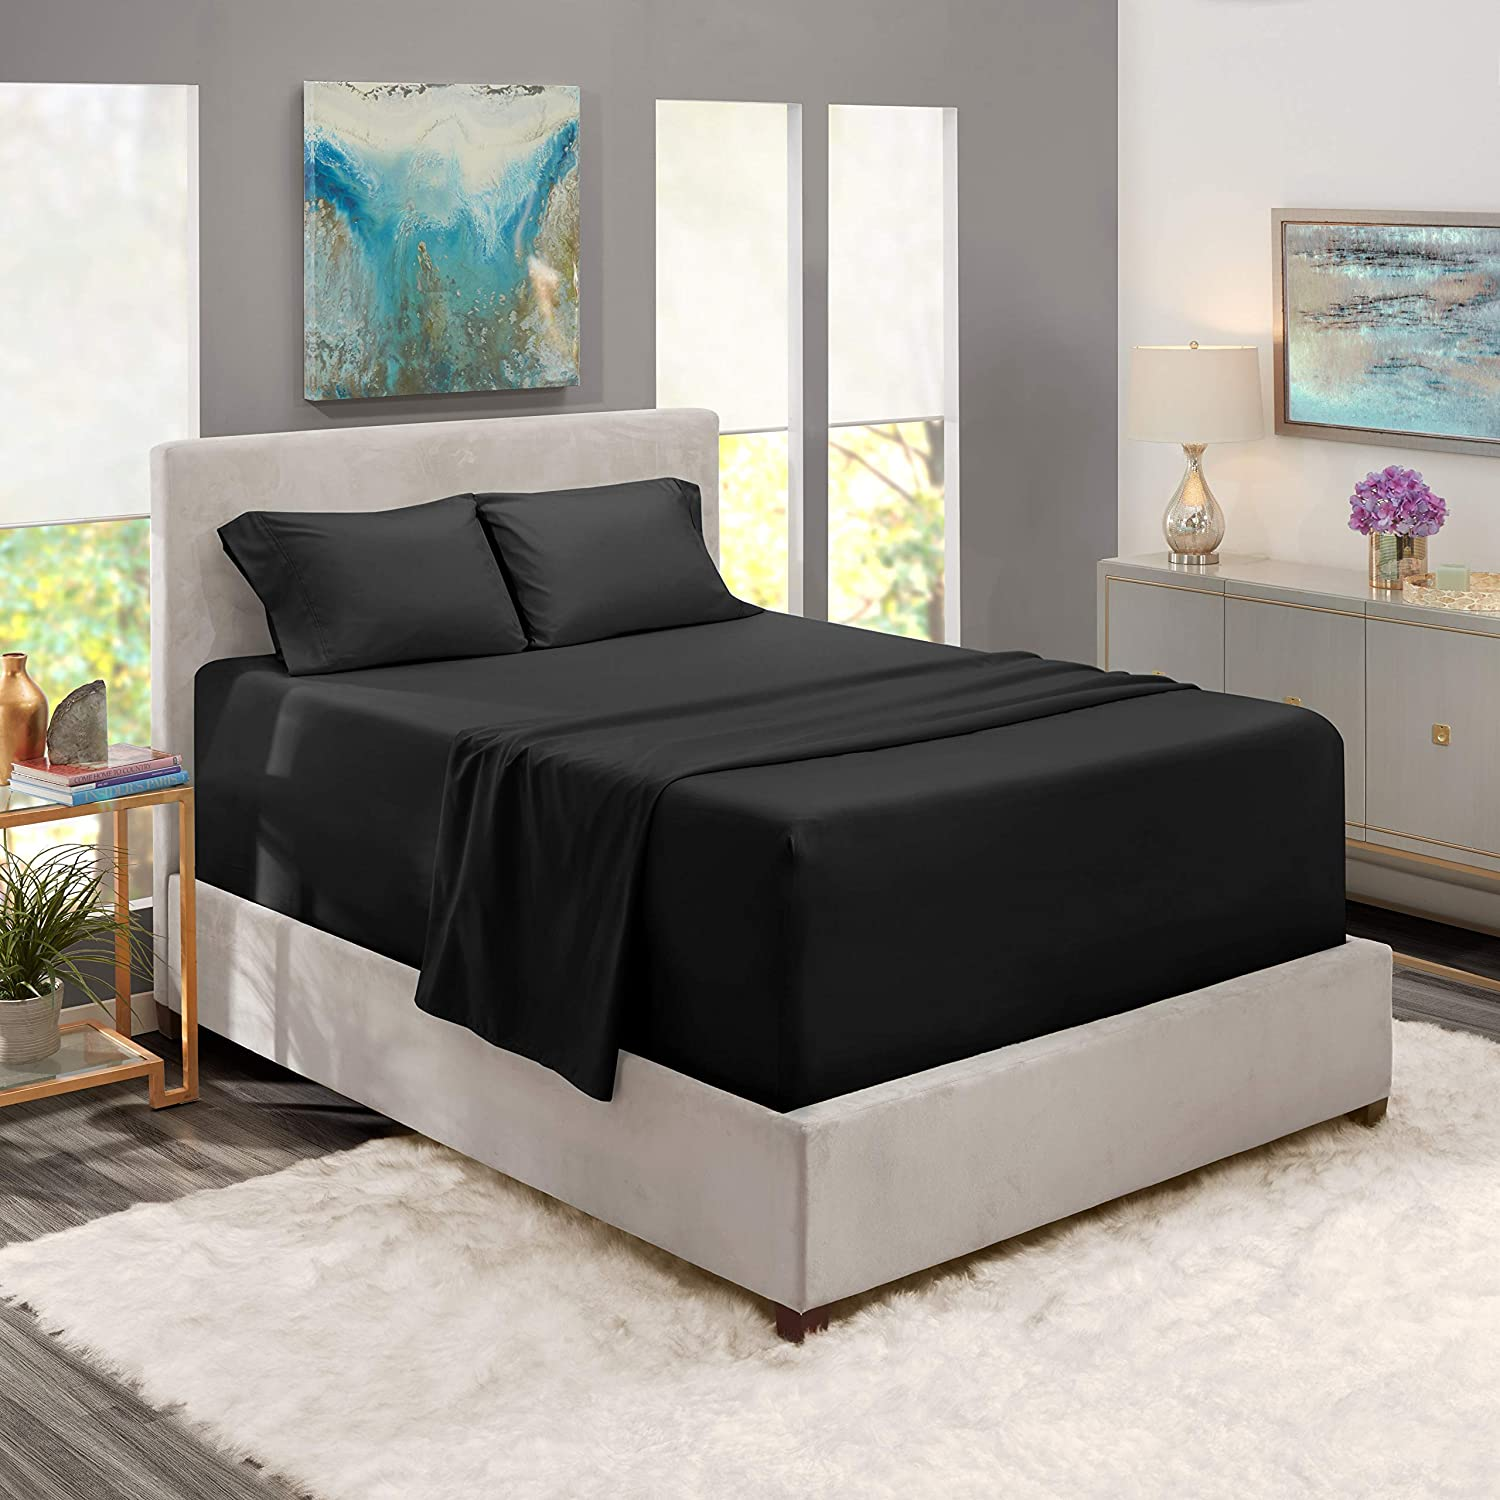 Queen Size Sheet Set - 4 Piece - 100% Cotton Hotel Luxury Bed Sheets - Extra Soft - 18